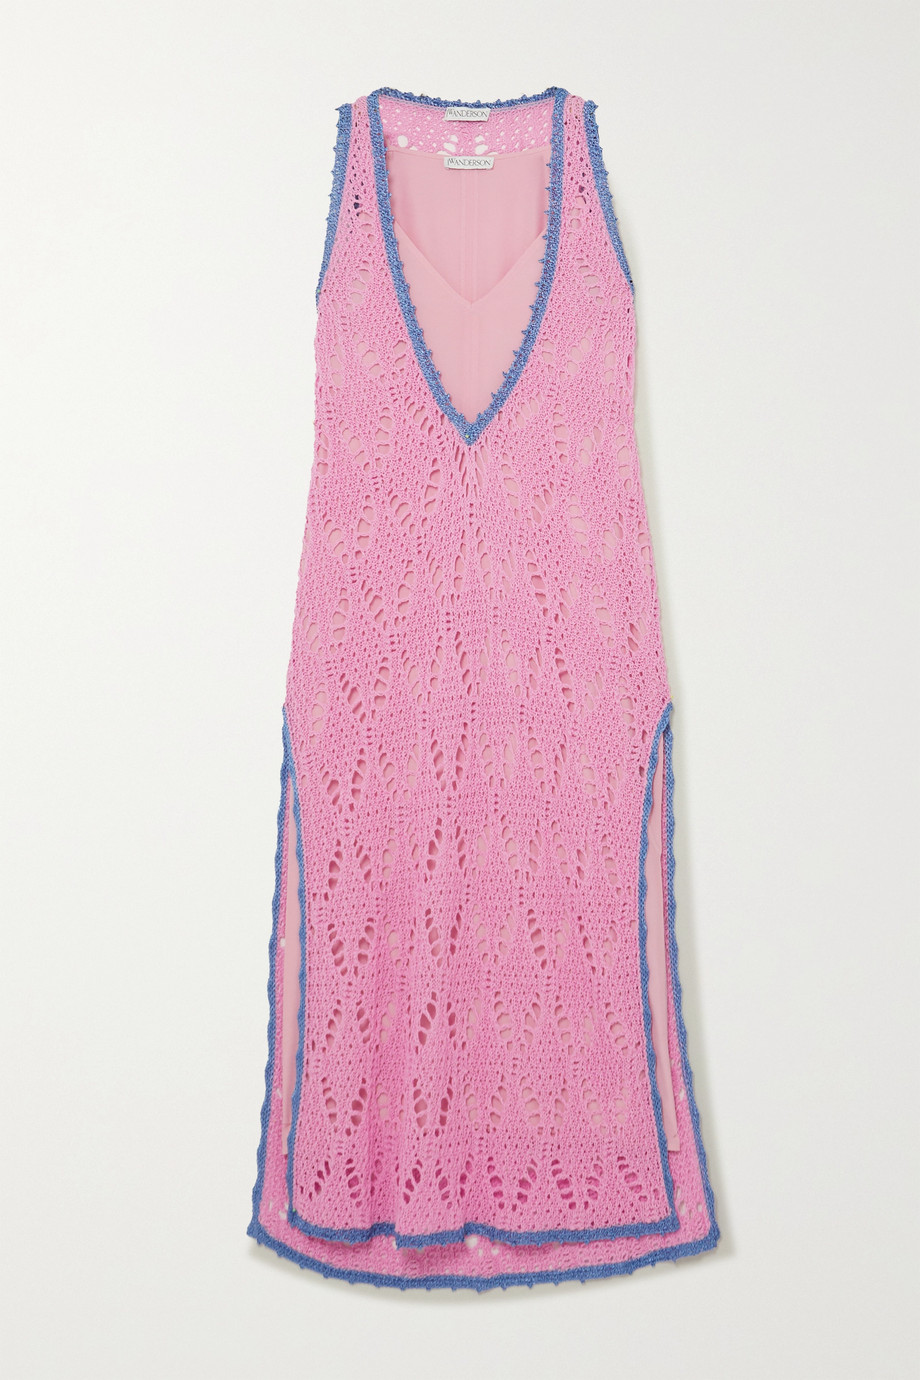 jw-anderson-layered-two-tone-crocheted-cotton-and-crepe-de-chine-maxi-dress